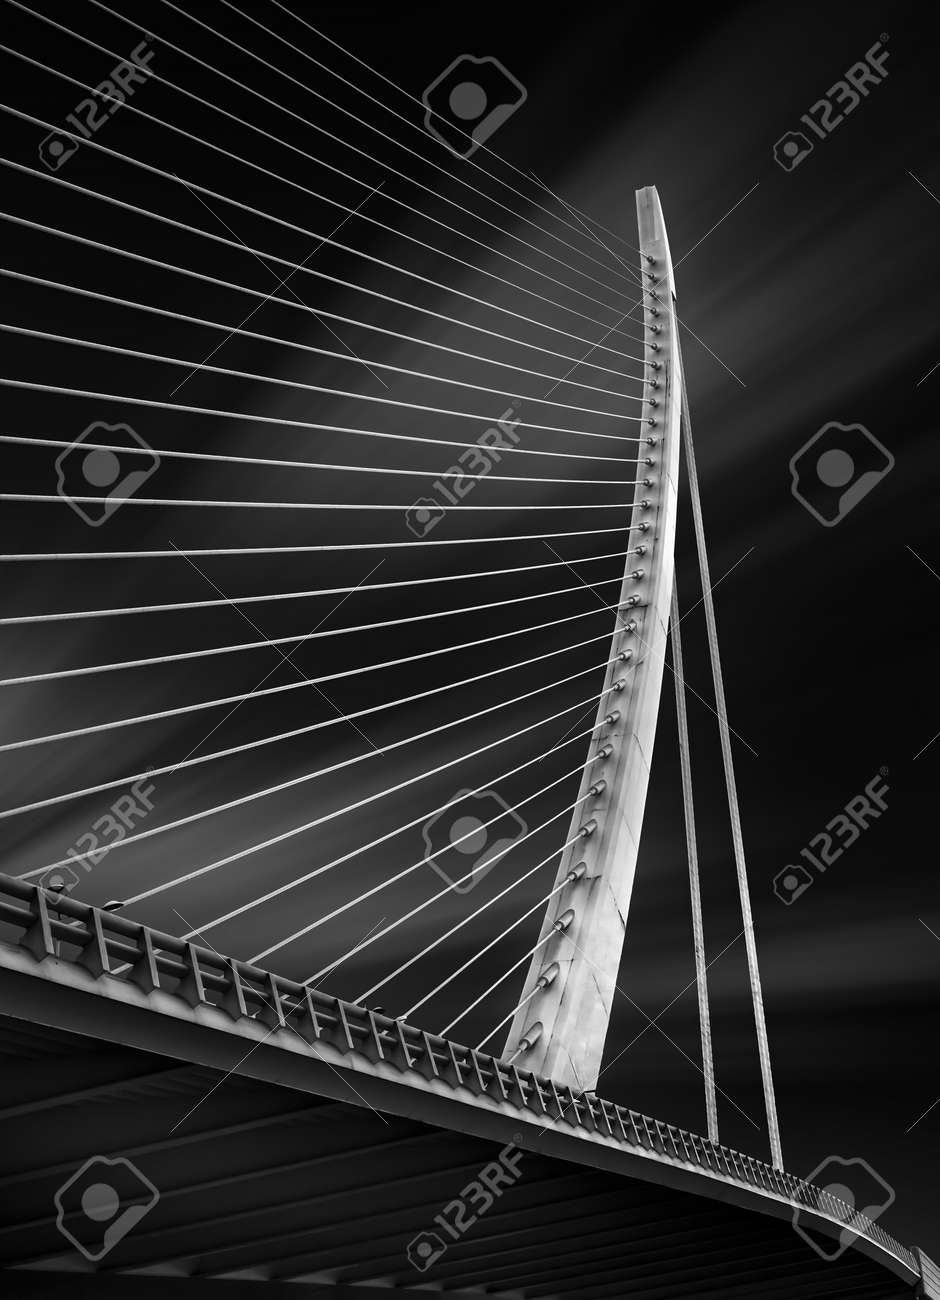 Fine art black and white photography of the structure of a modern bridg in Spain - 156485197